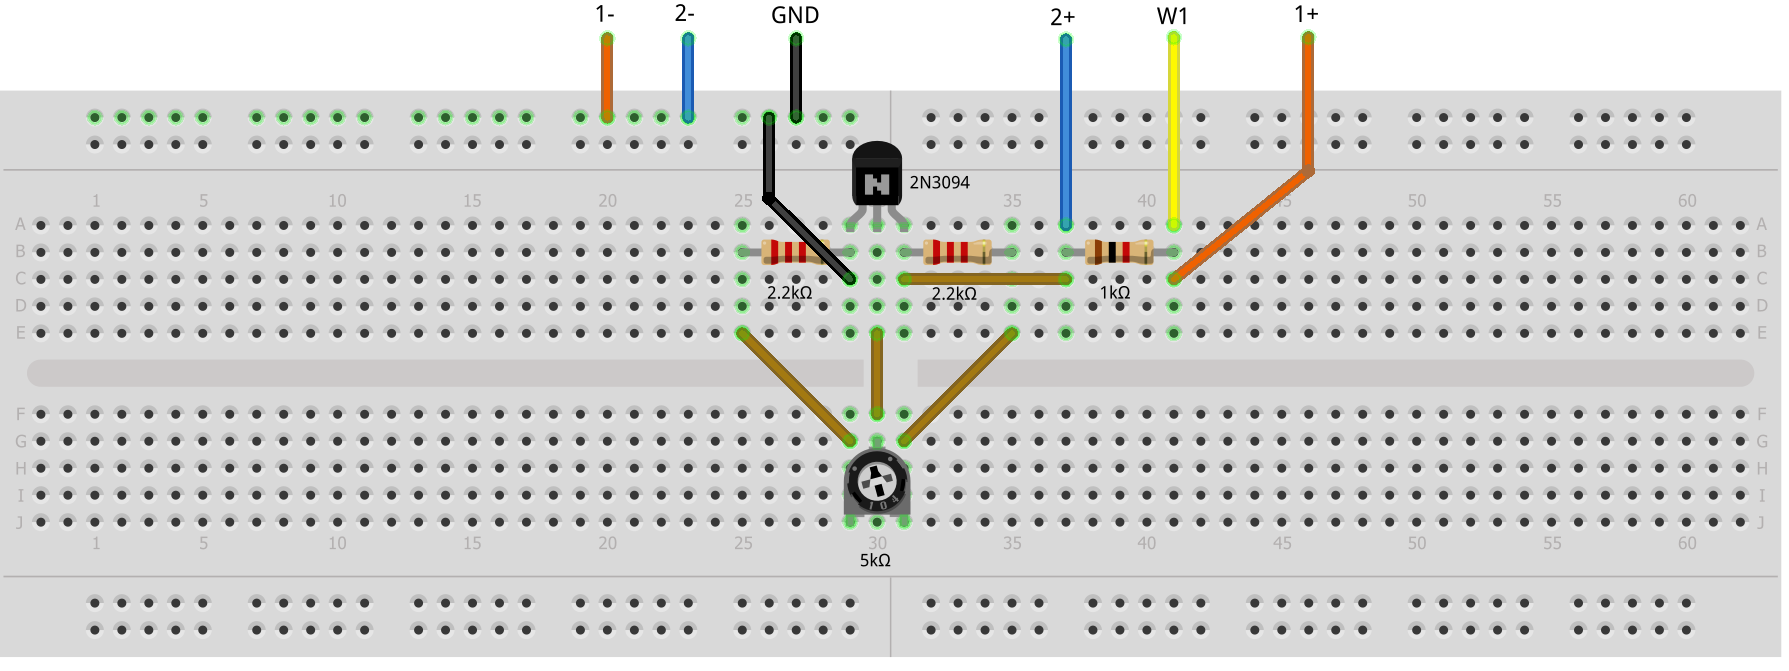 Activity 3 The Bjt Connected As A Diode Analog Devices Wiki Input And Output Coupling Bipolar Junction Transistors Electronics Hardware Setup